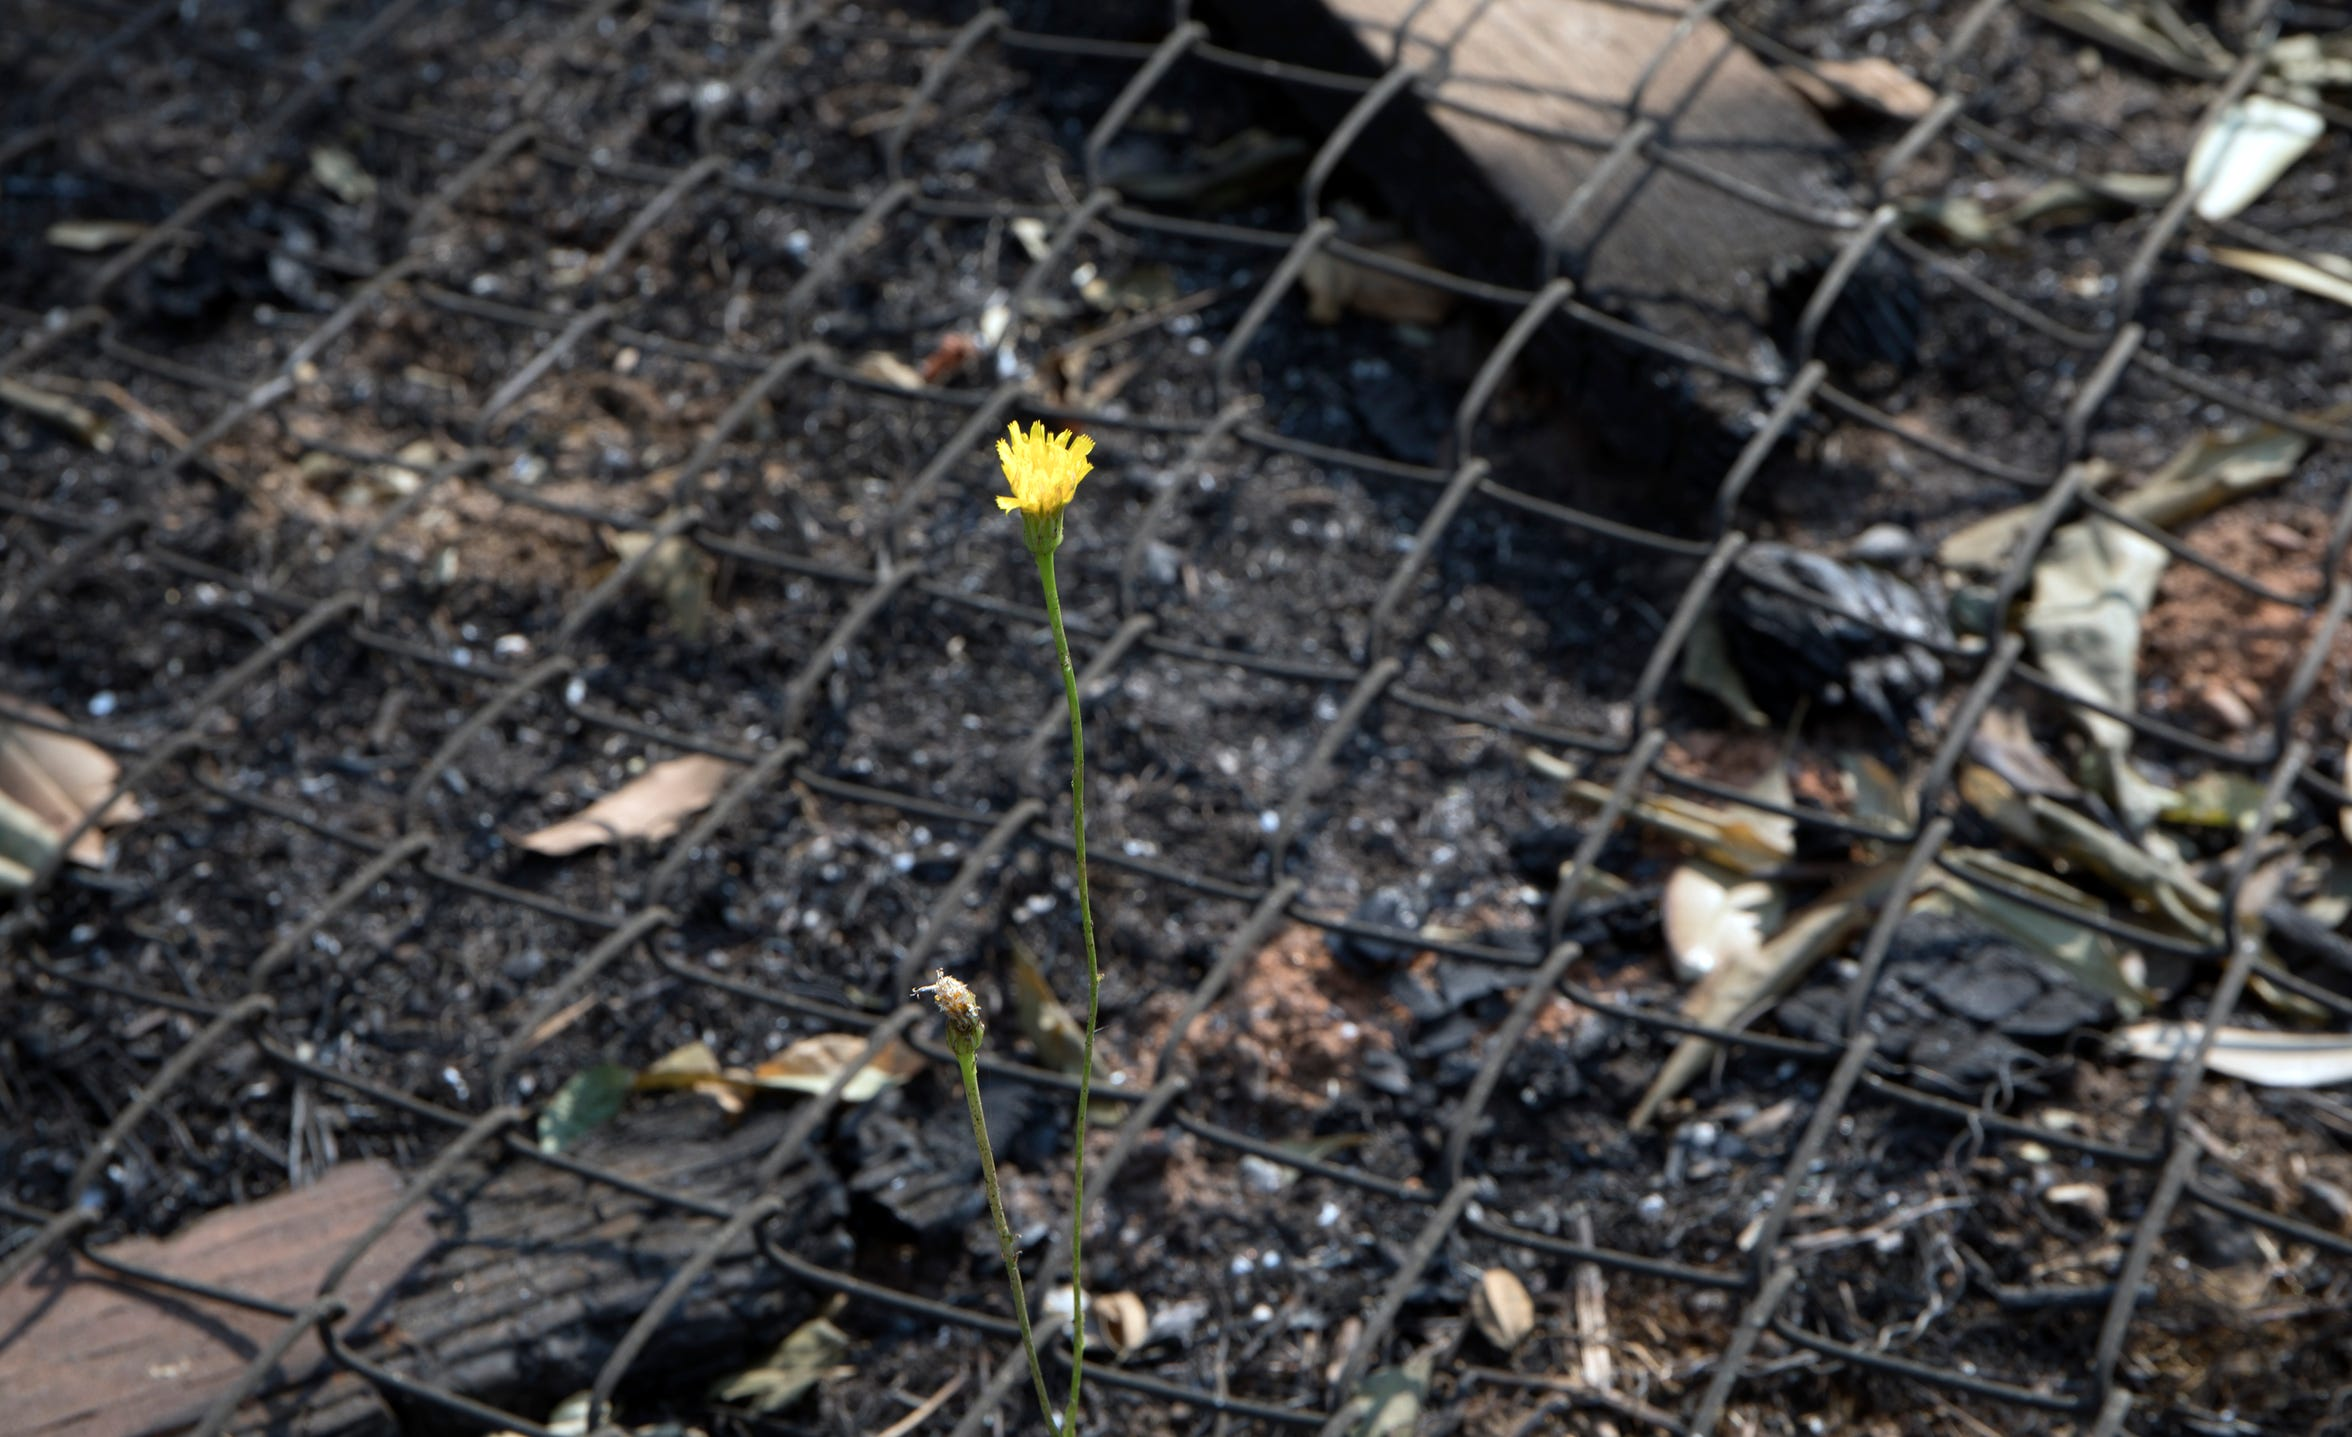 A tiny flower blooms through the charred debris in Keswick, Calif., Monday, August 20, 2018.